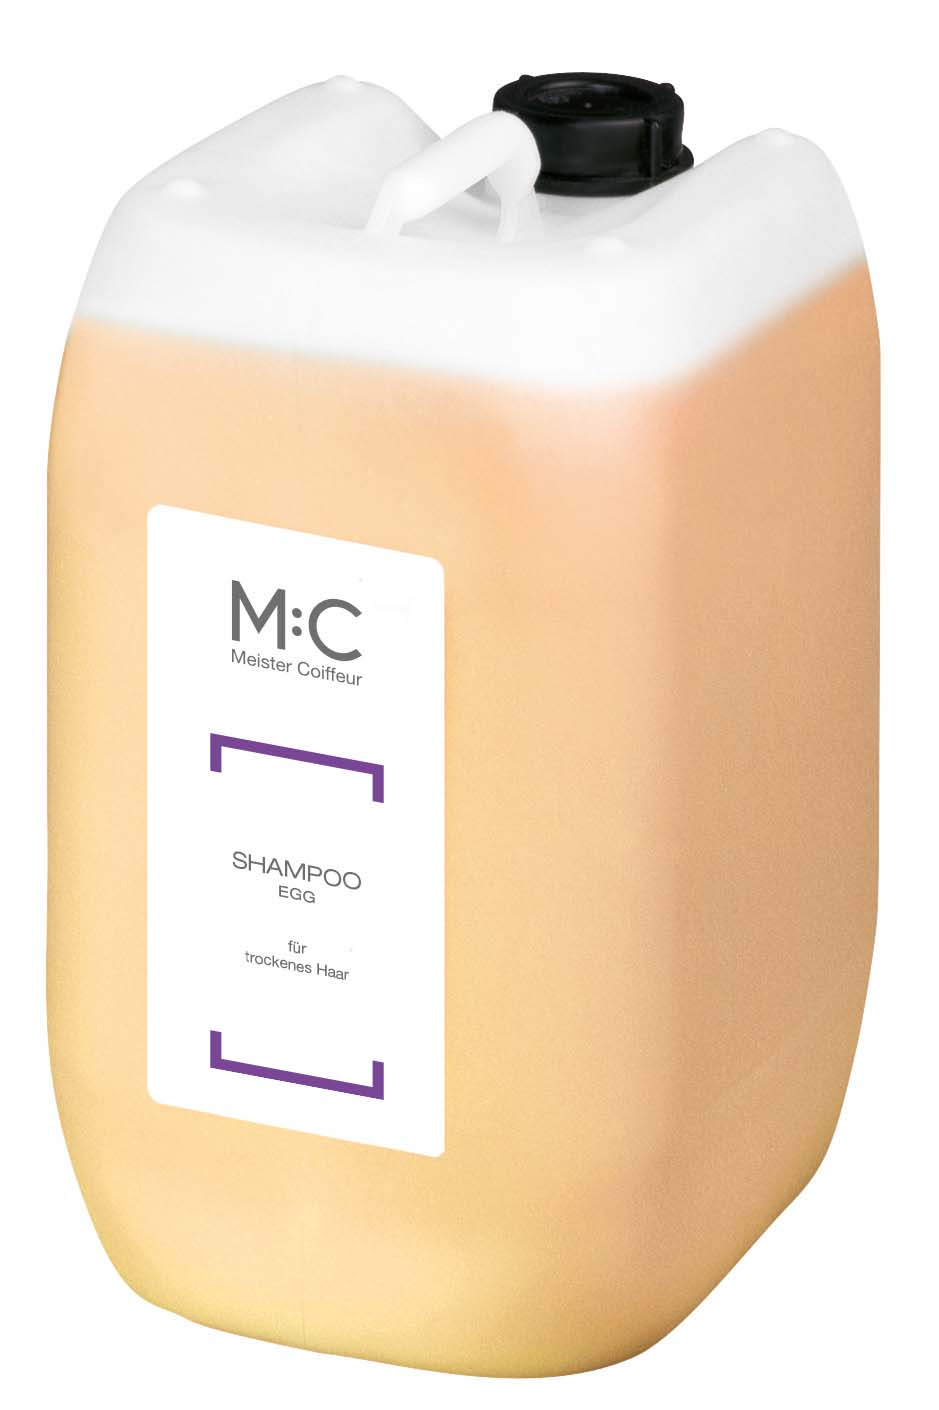 M:C Shampoo Egg T 10.000 ml